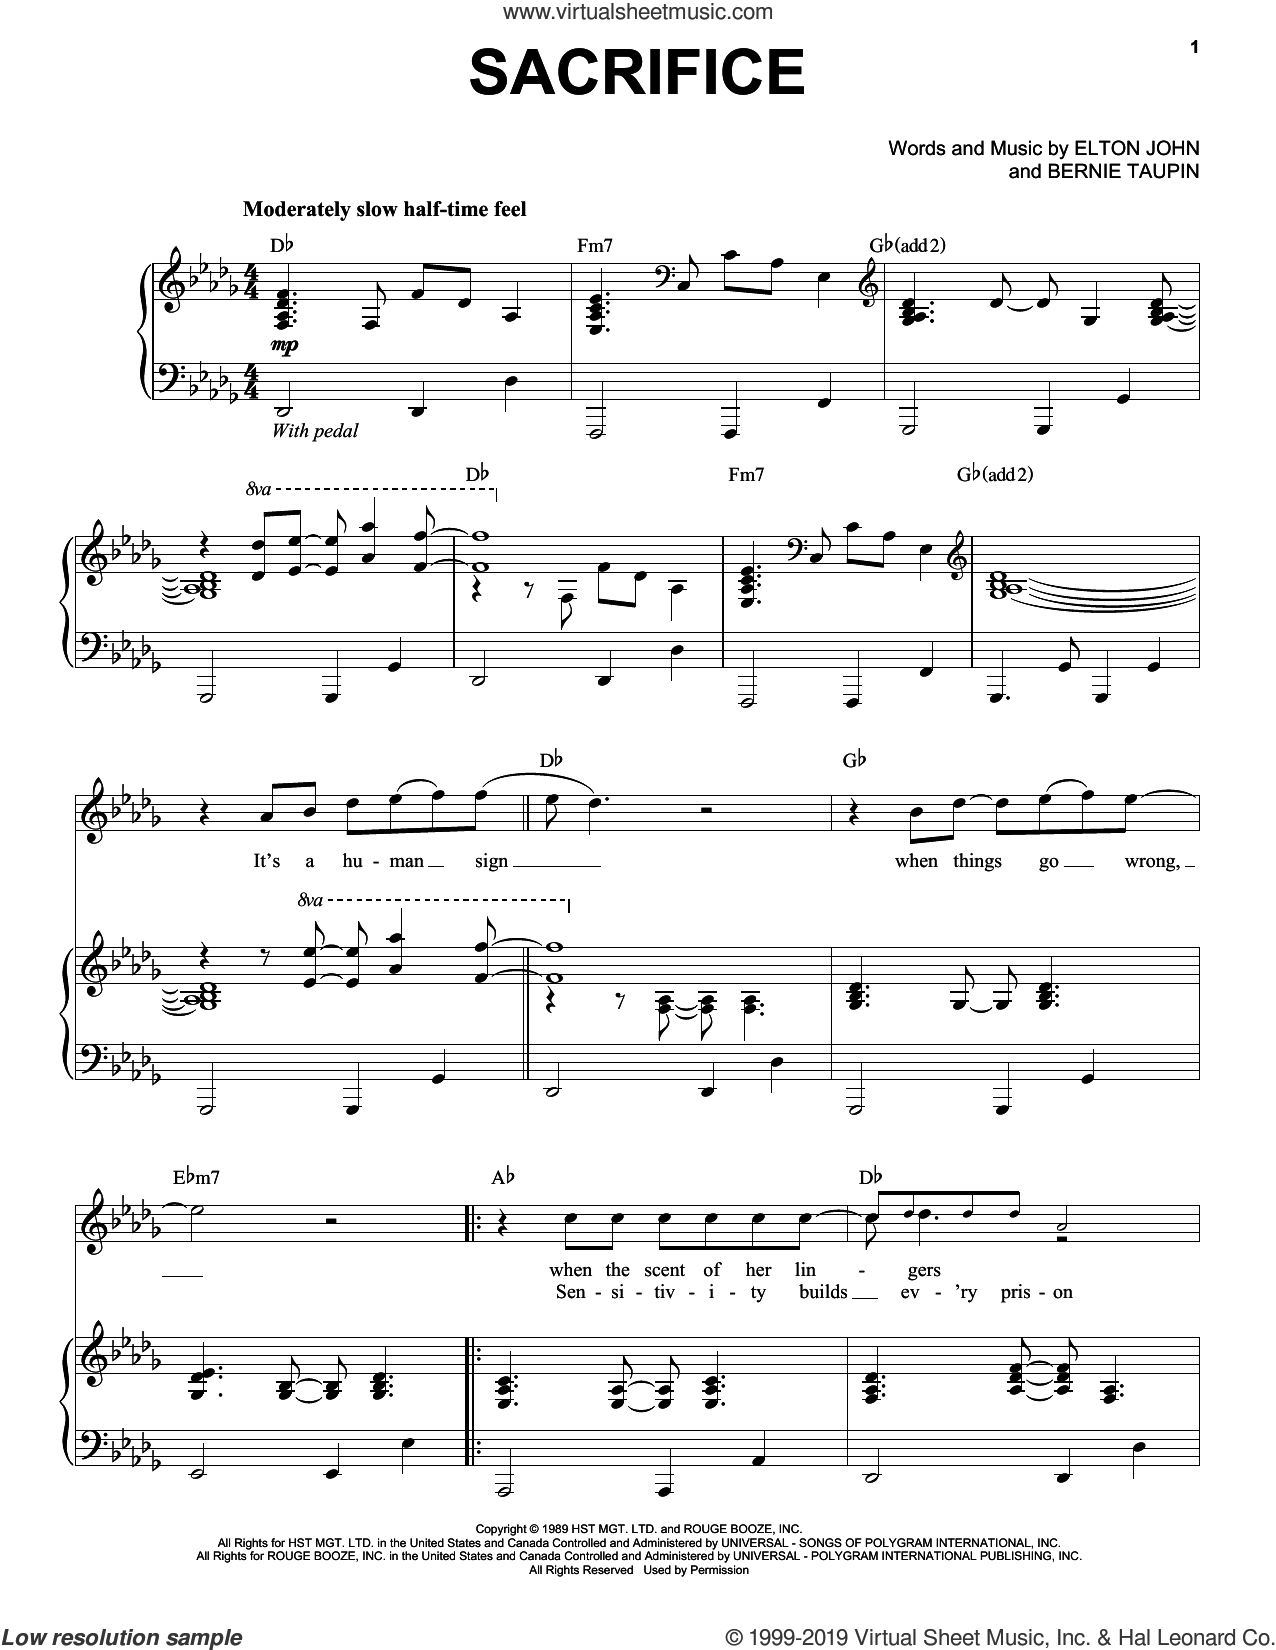 Sacrifice sheet music for voice and piano by Elton John and Bernie Taupin, intermediate skill level